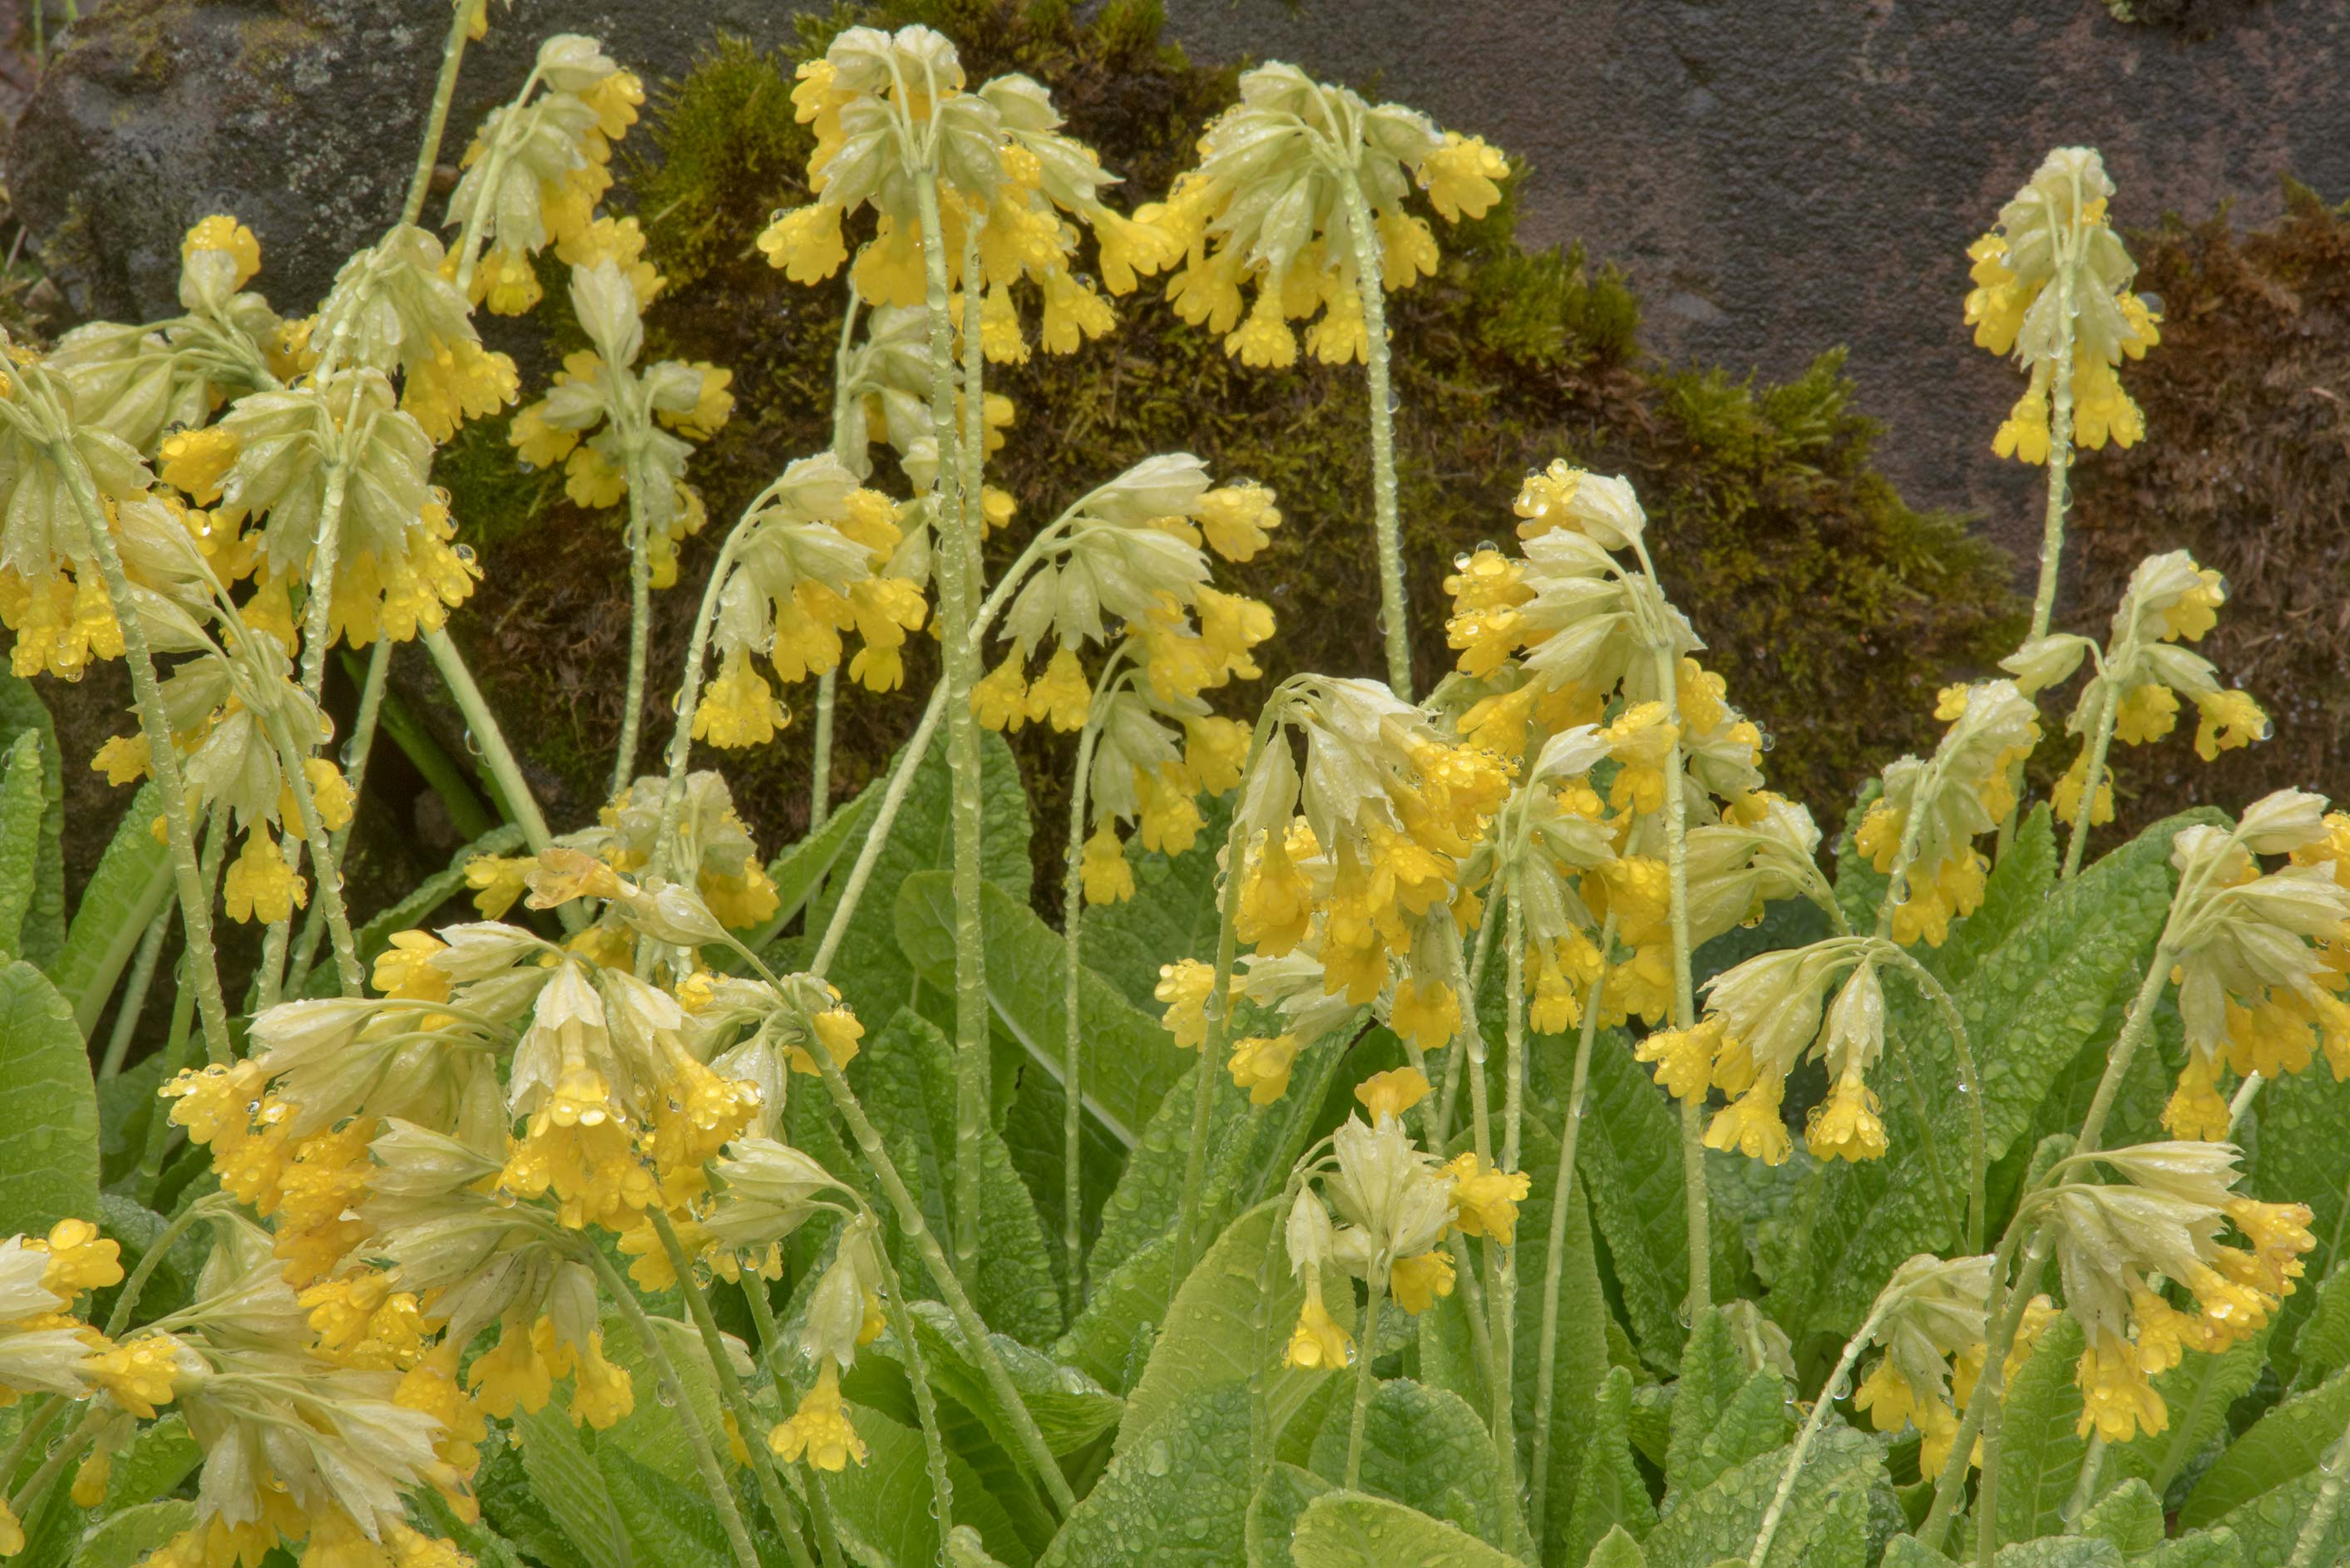 Yellow flowers of cowslip (Primula veris) in...Institute. St.Petersburg, Russia